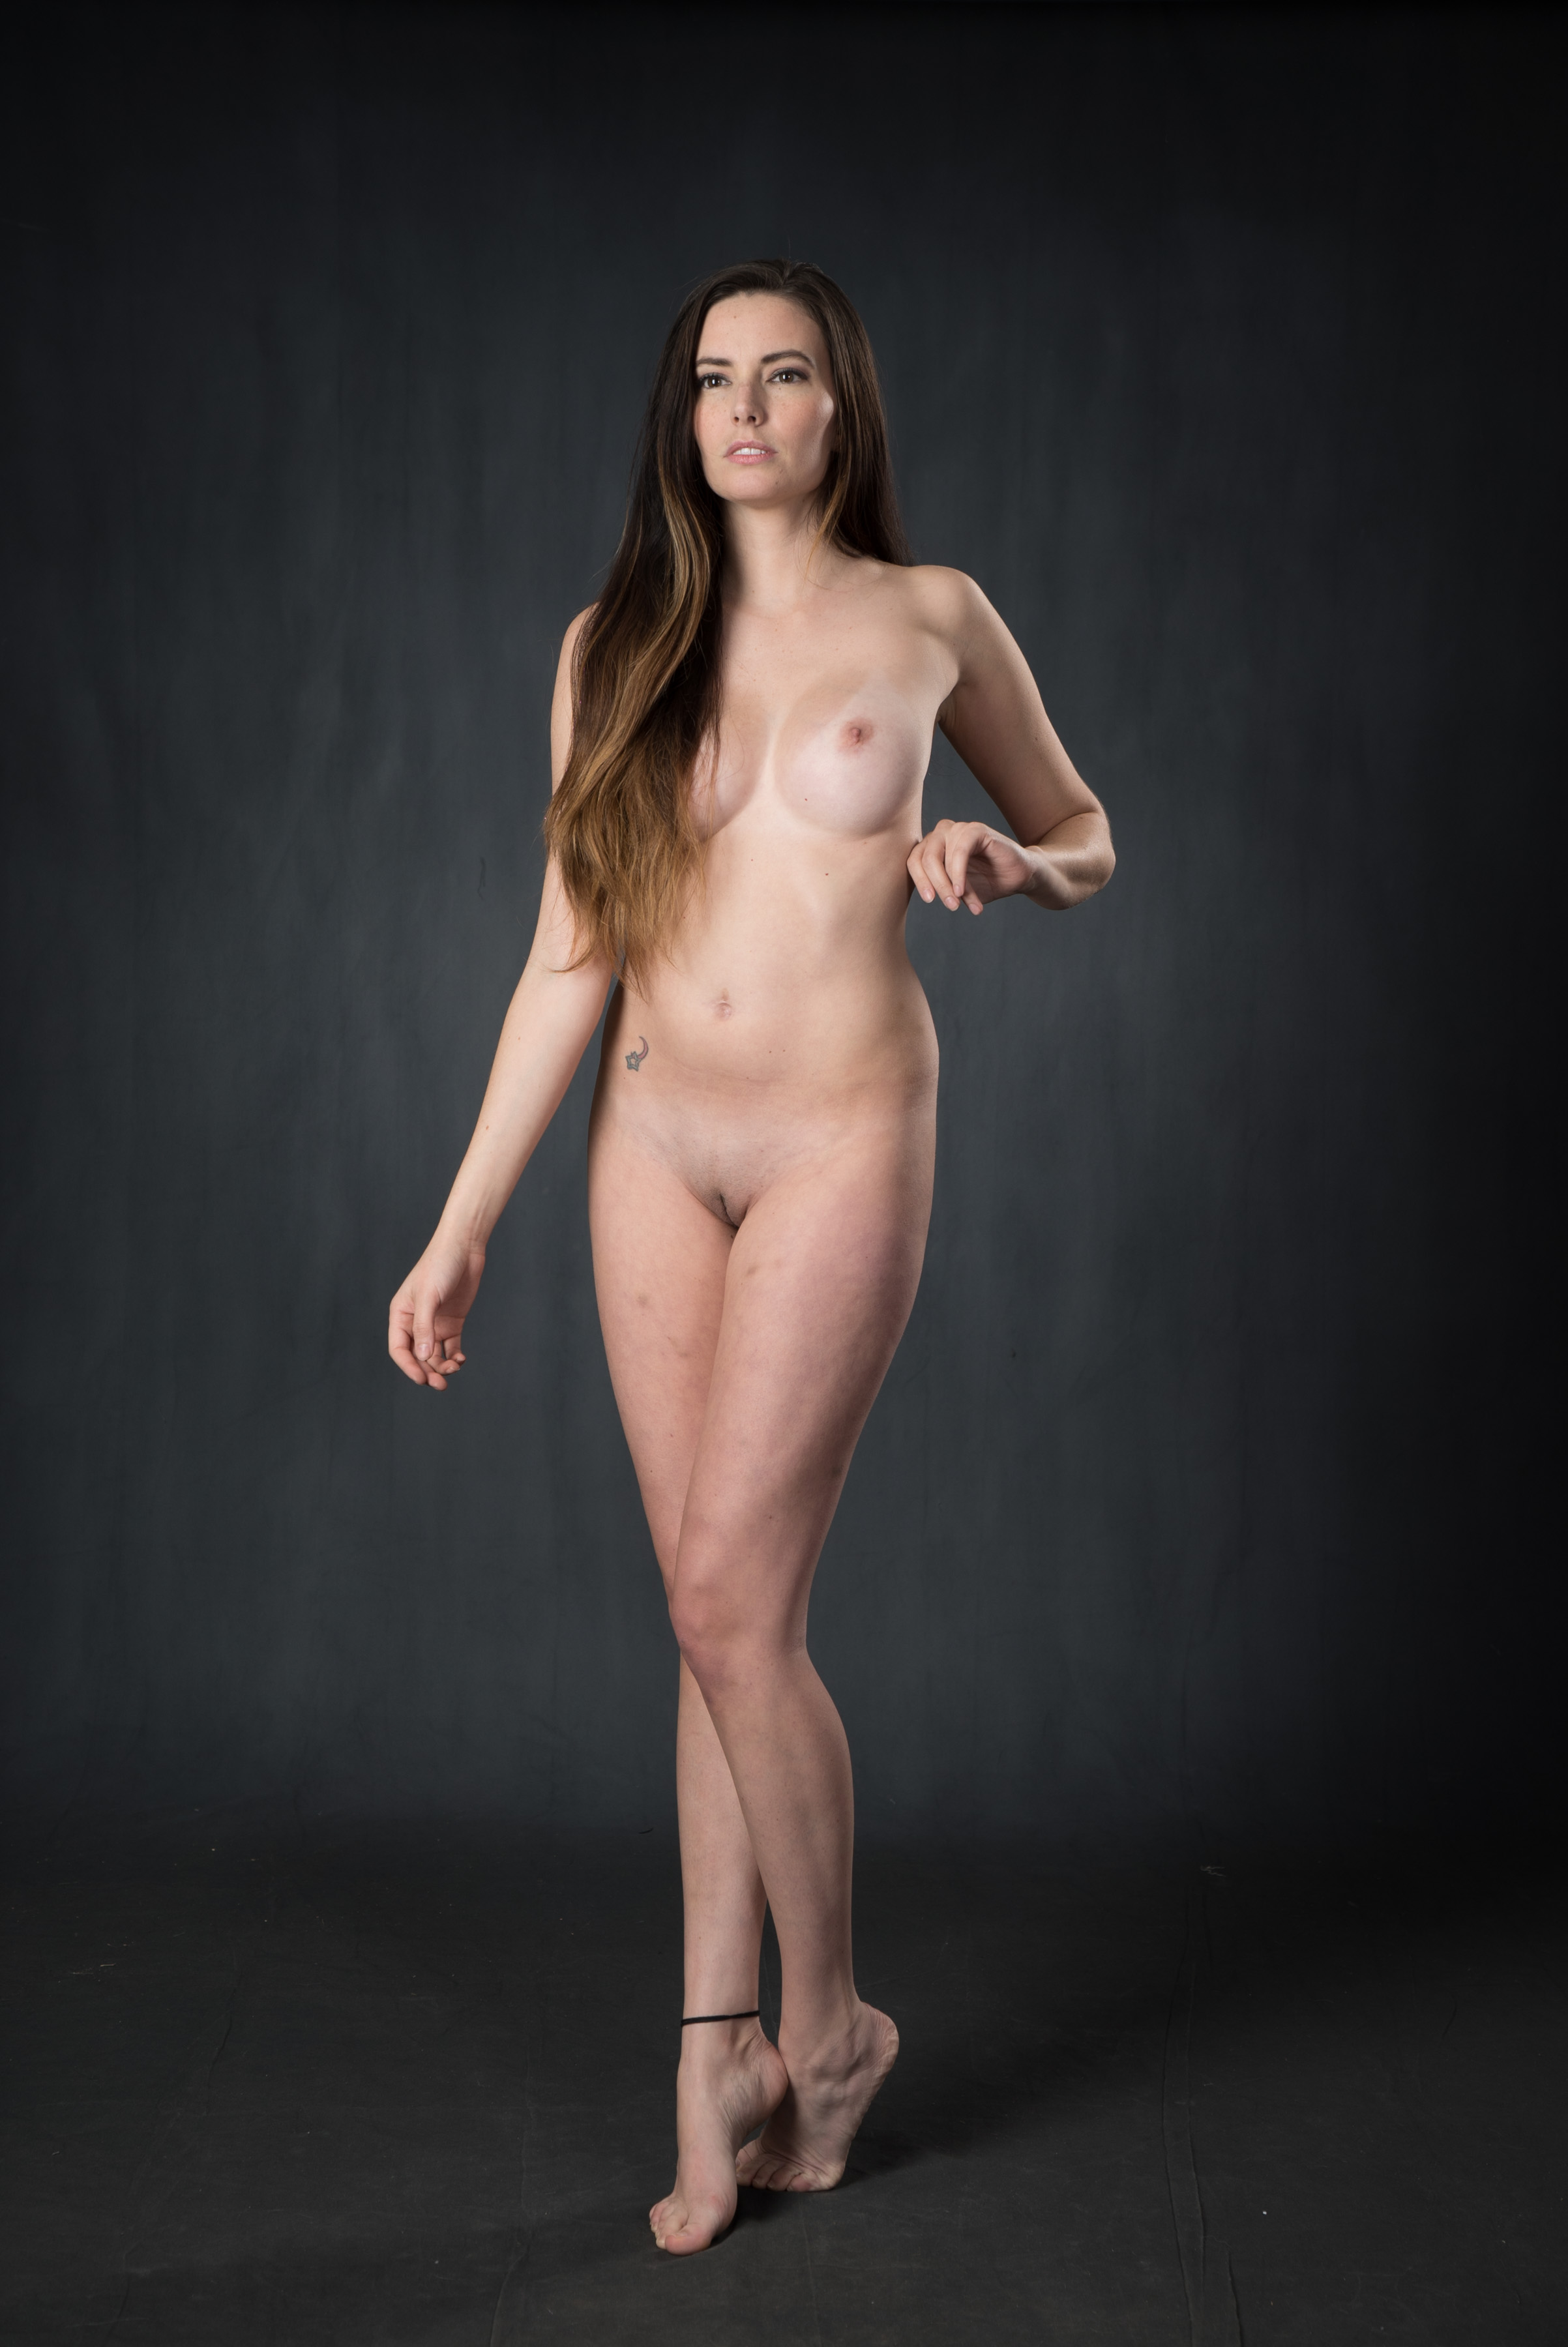 Nude Standing Poses 42